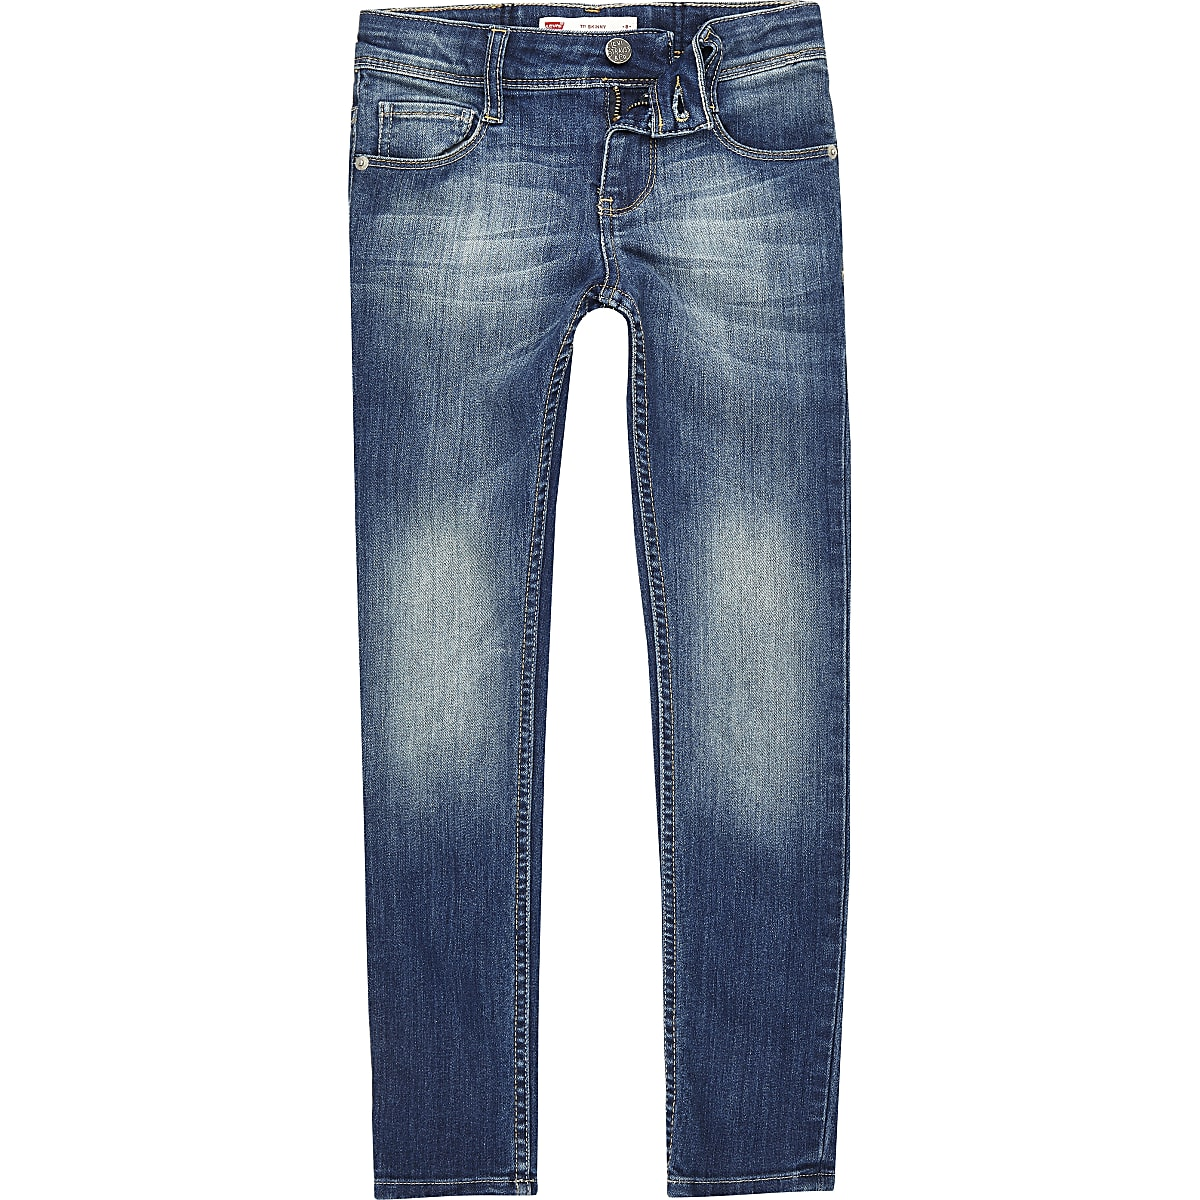 Girls Levi's blue faded skinny jeans